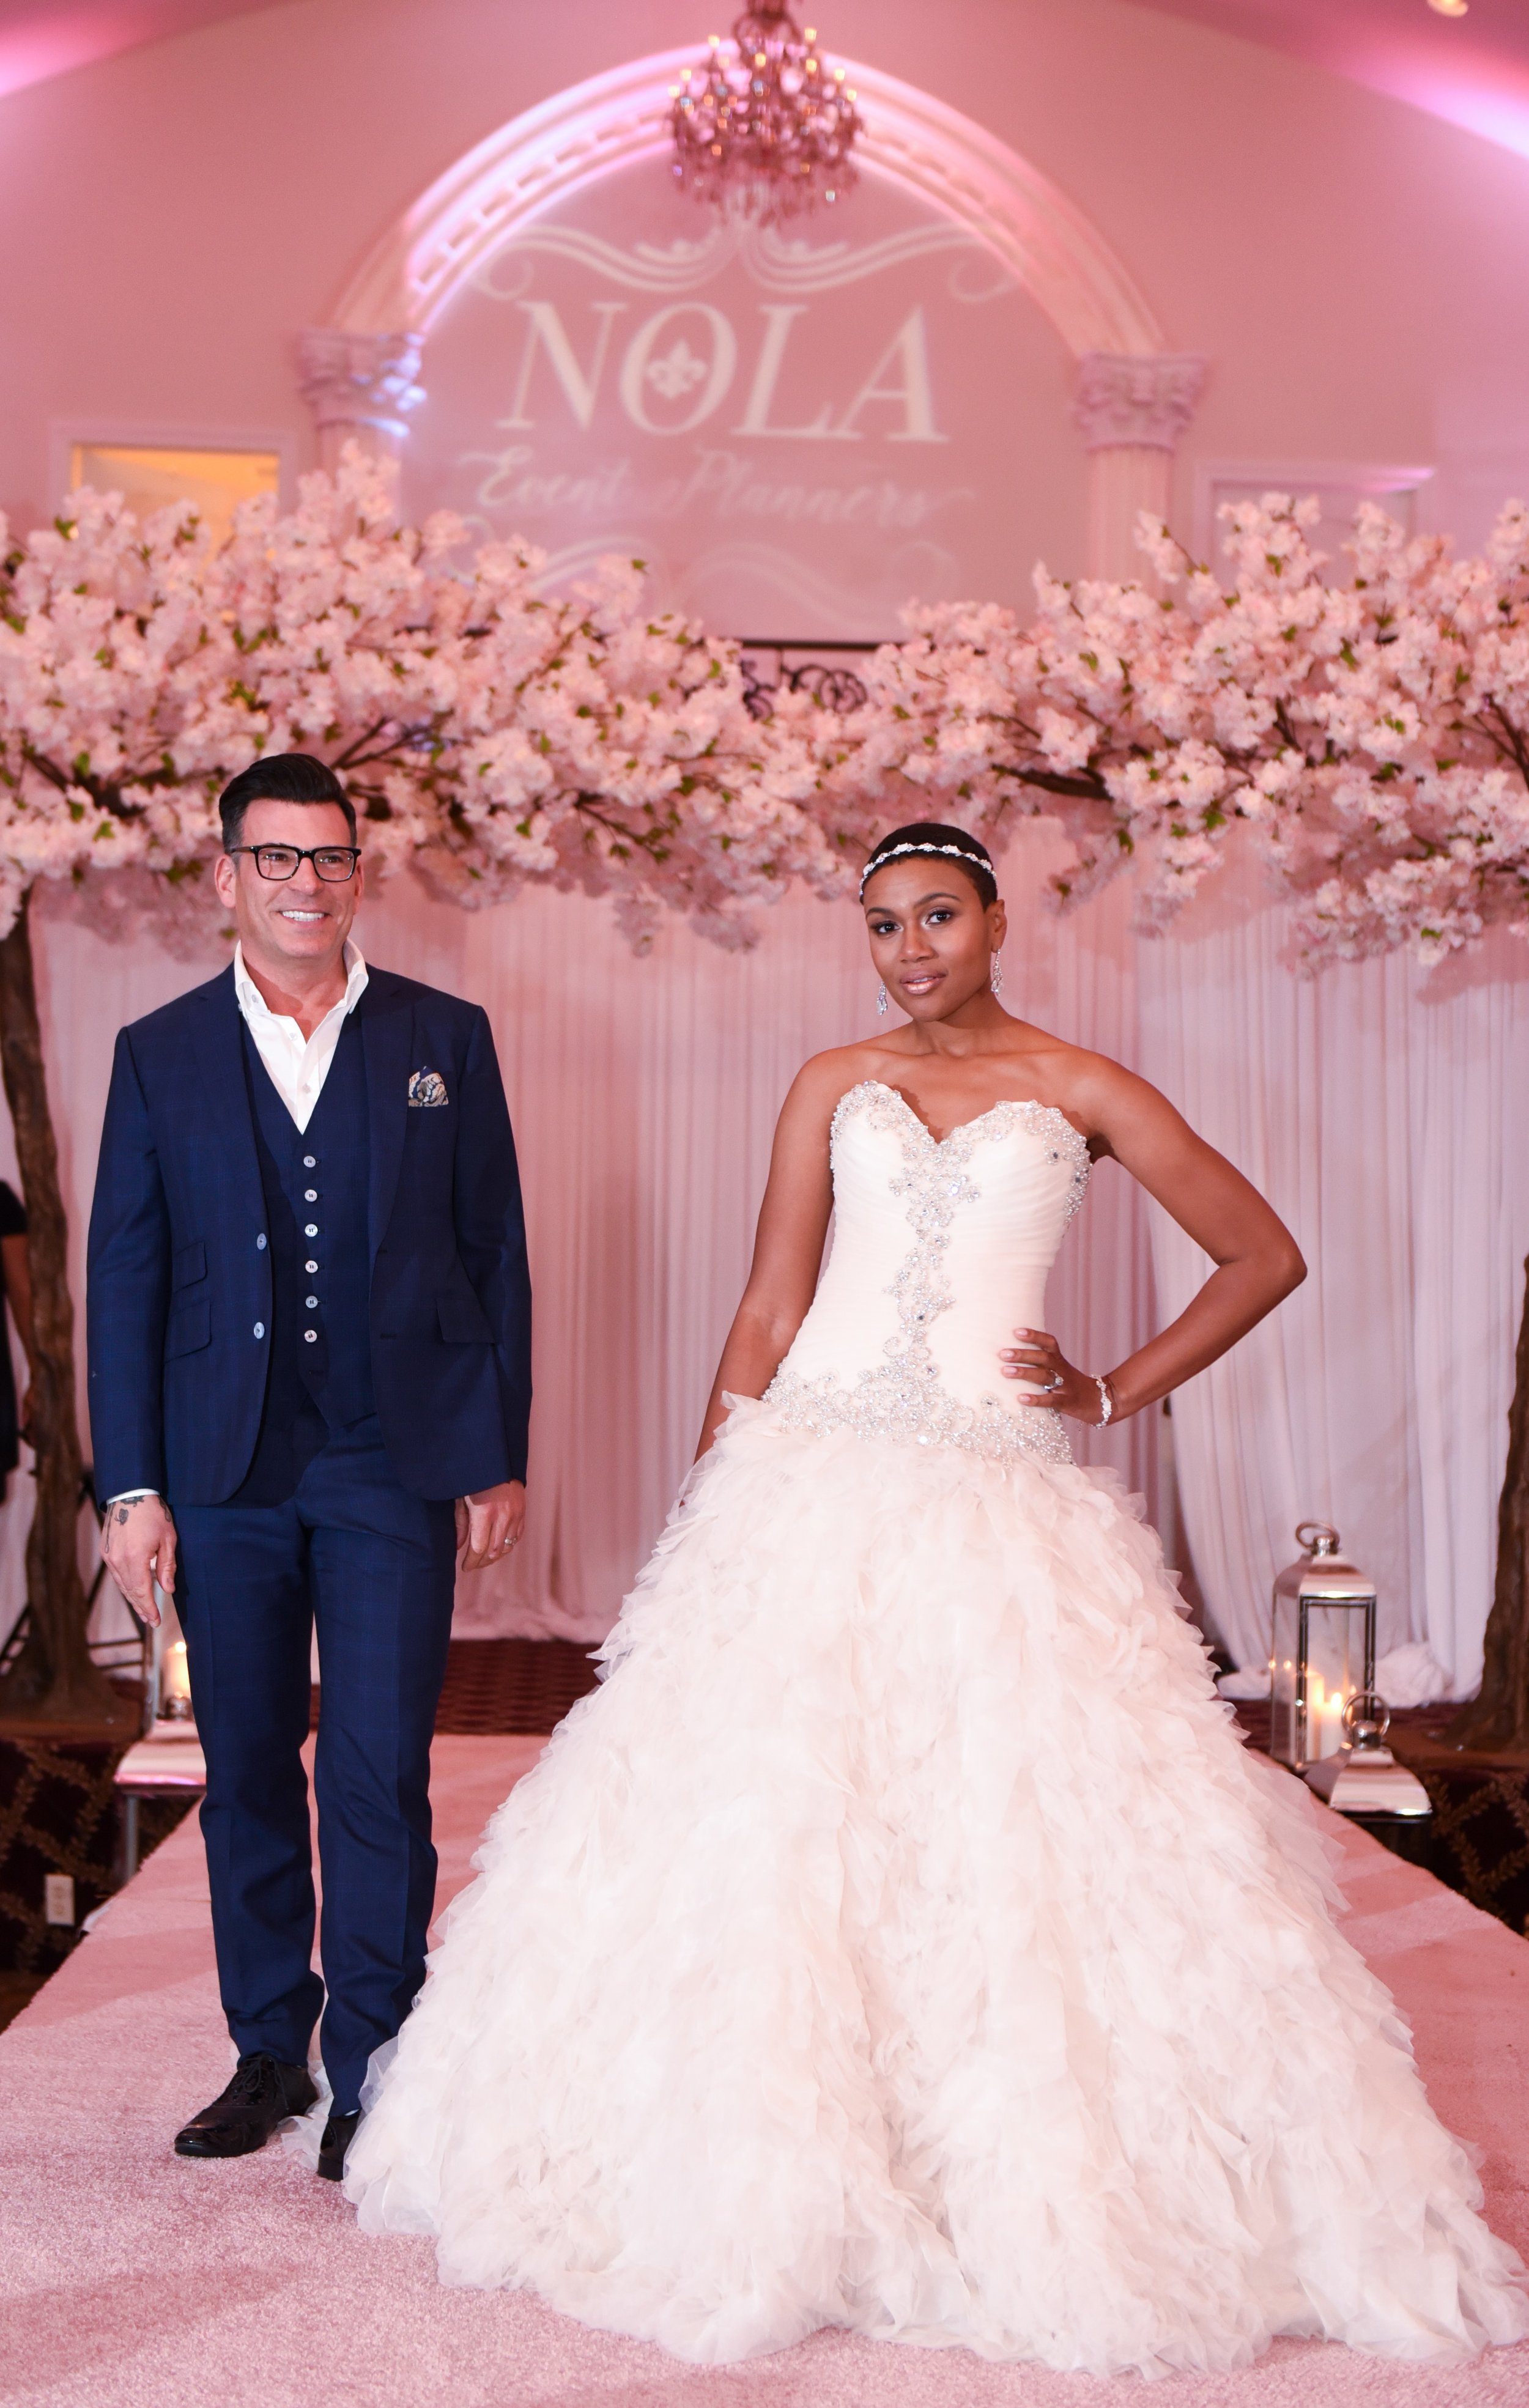 David Tutera Rocks Nola-Promo-27.JPG